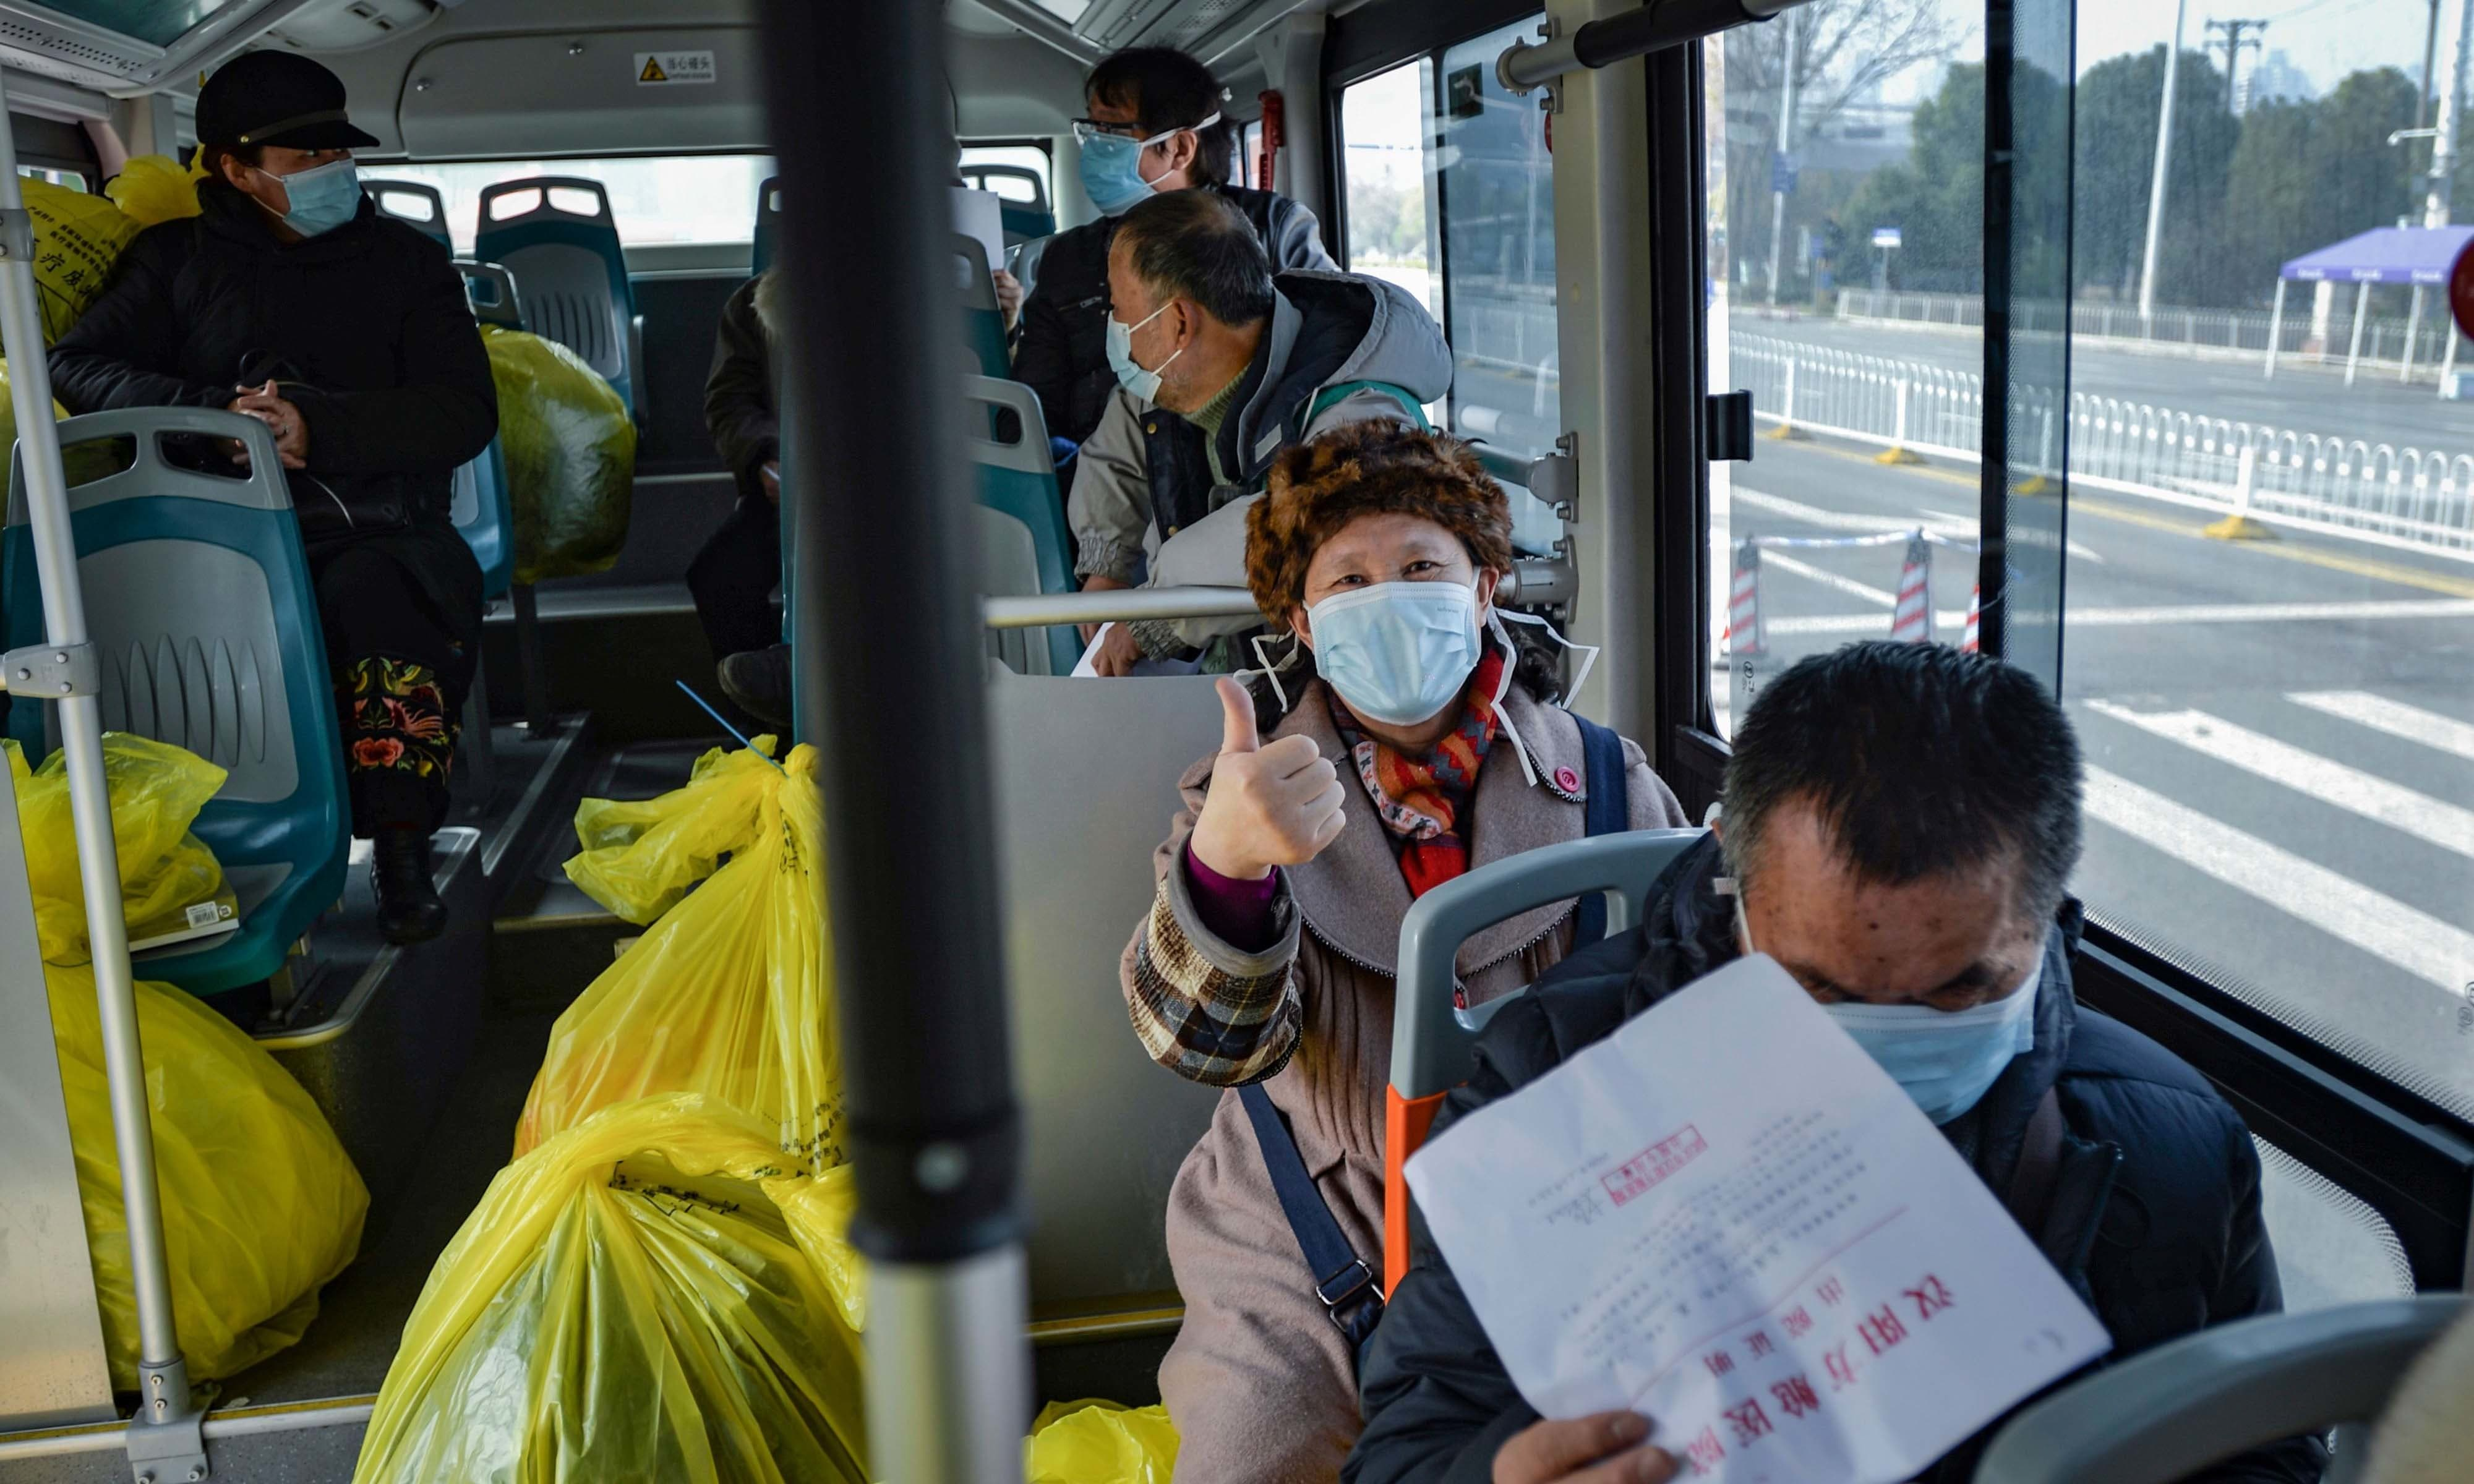 This photo taken on February 22, 2020 shows people who have recovered from the COVID-19 coronavirus infection leaving a hospital by bus in Wuhan in China's central Hubei province. — AFP/File